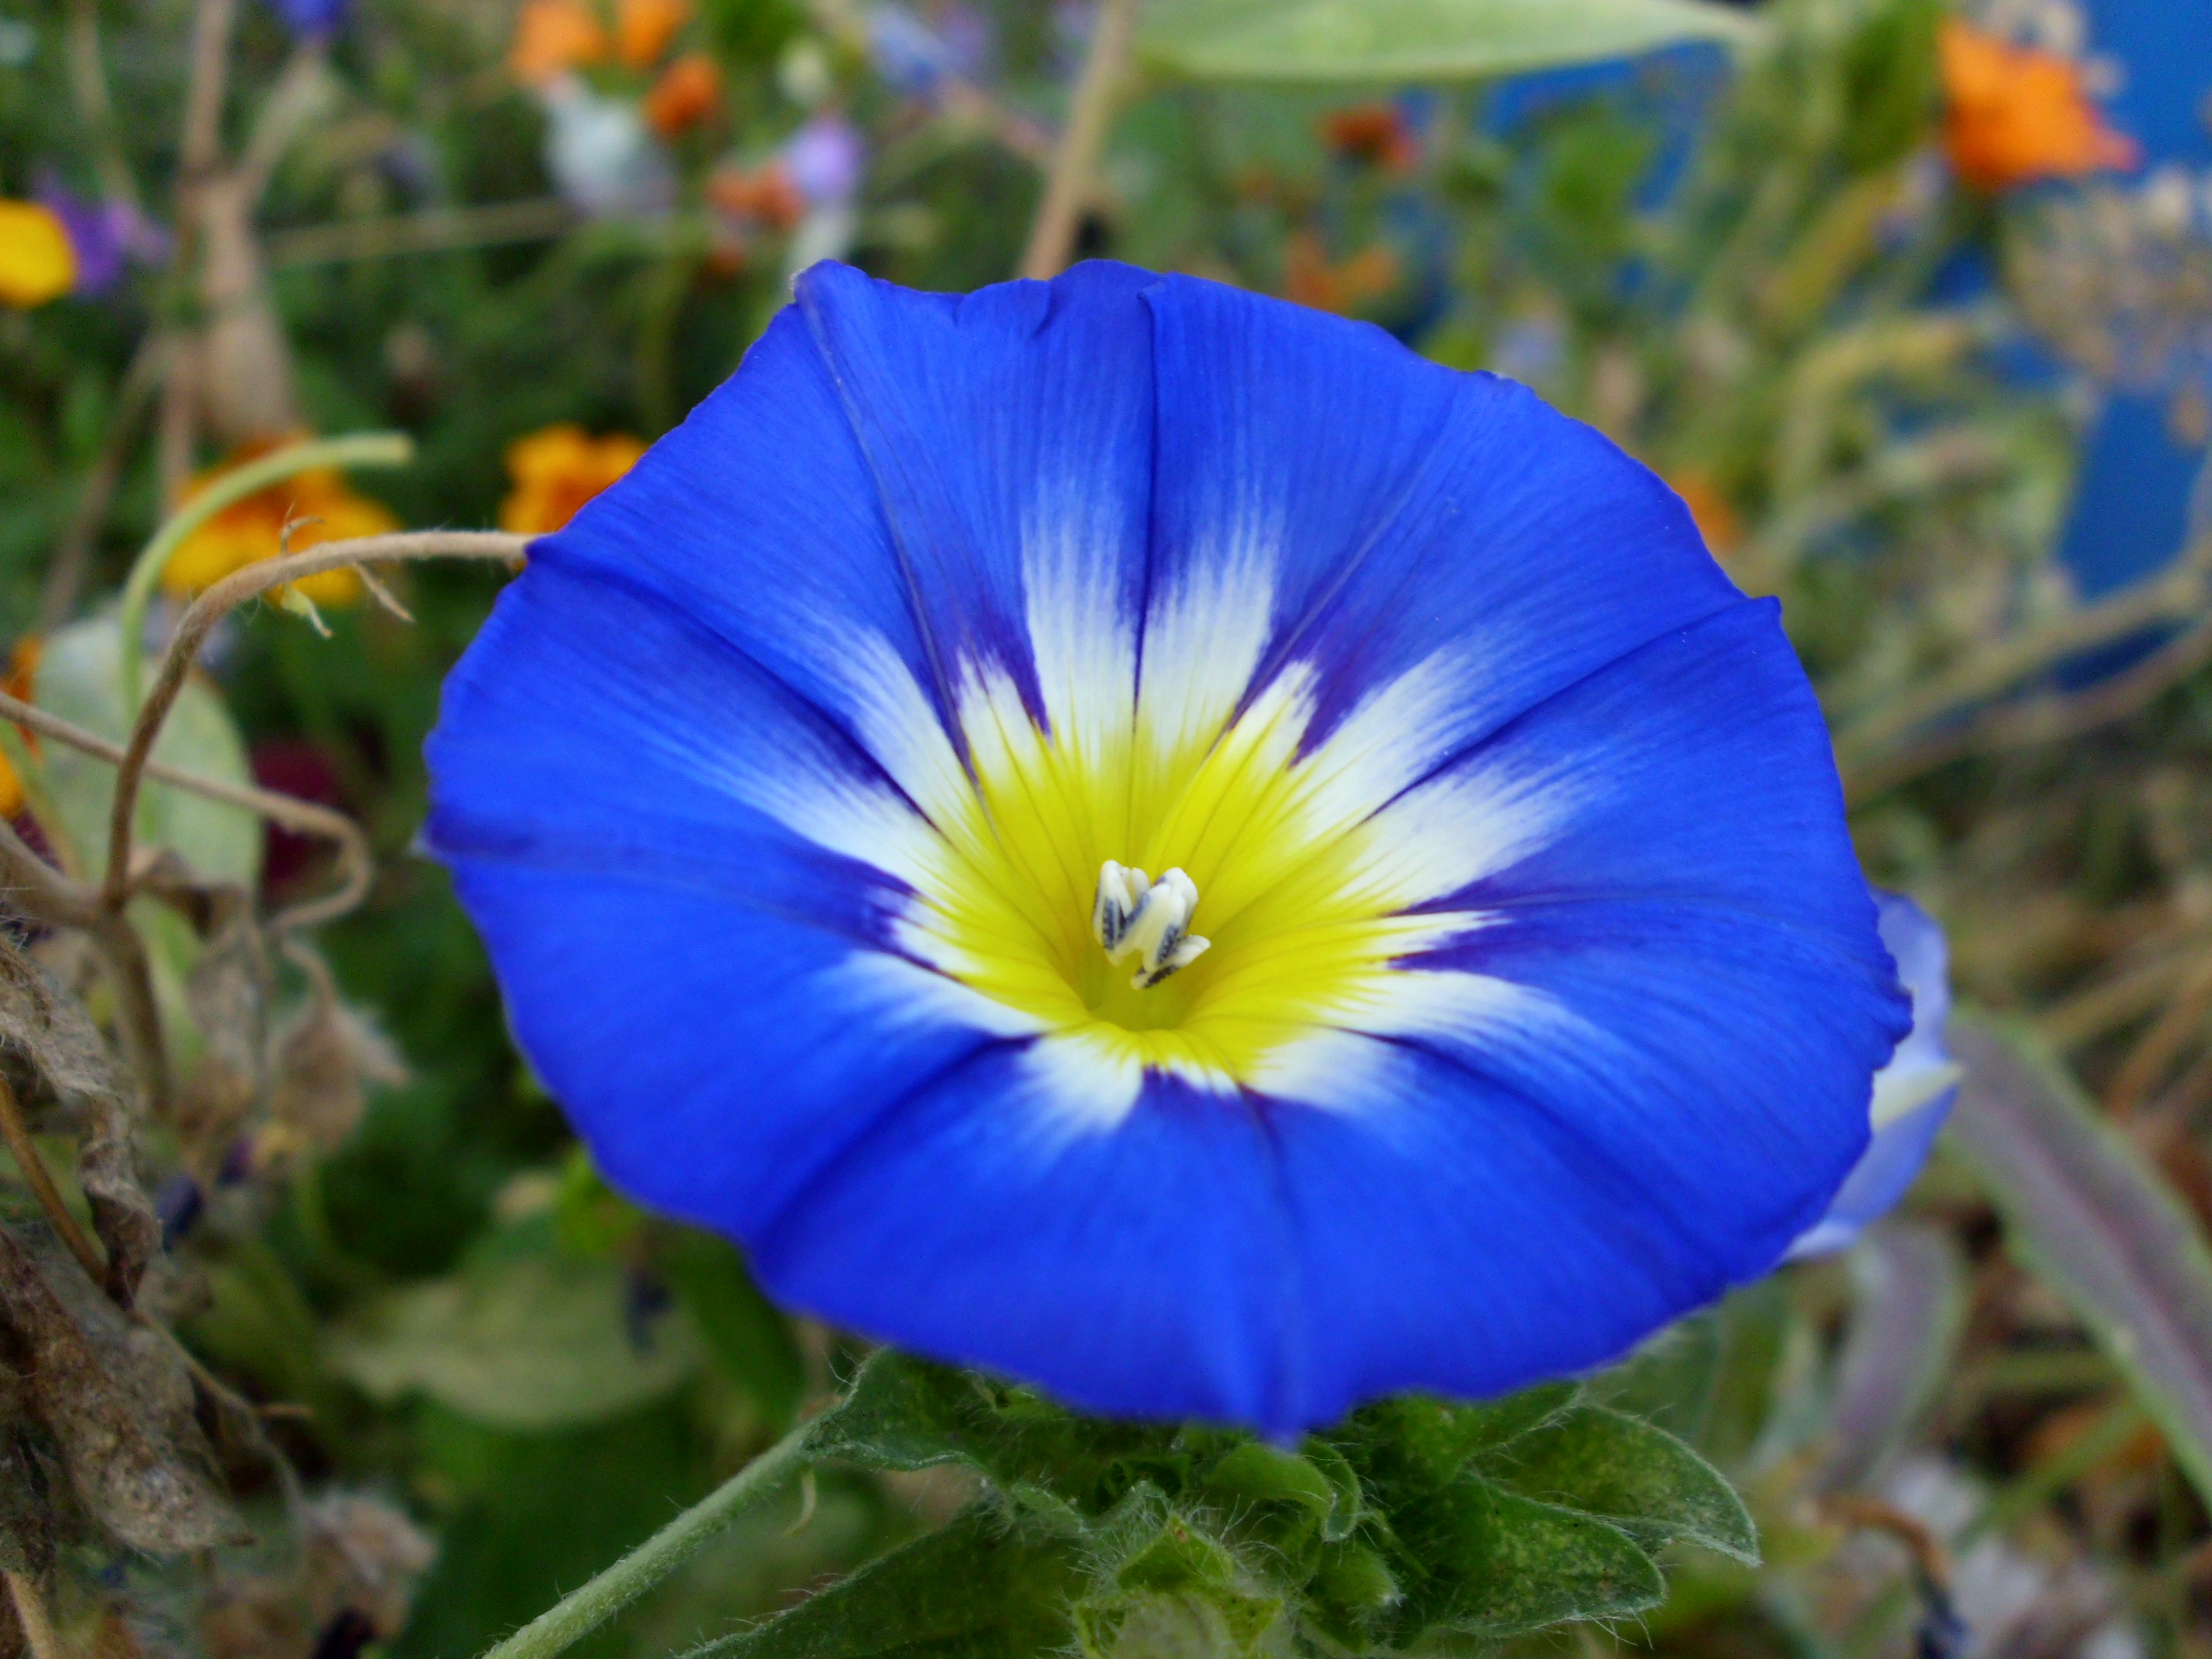 Description convolvulus tricolor - dwarf morning glory